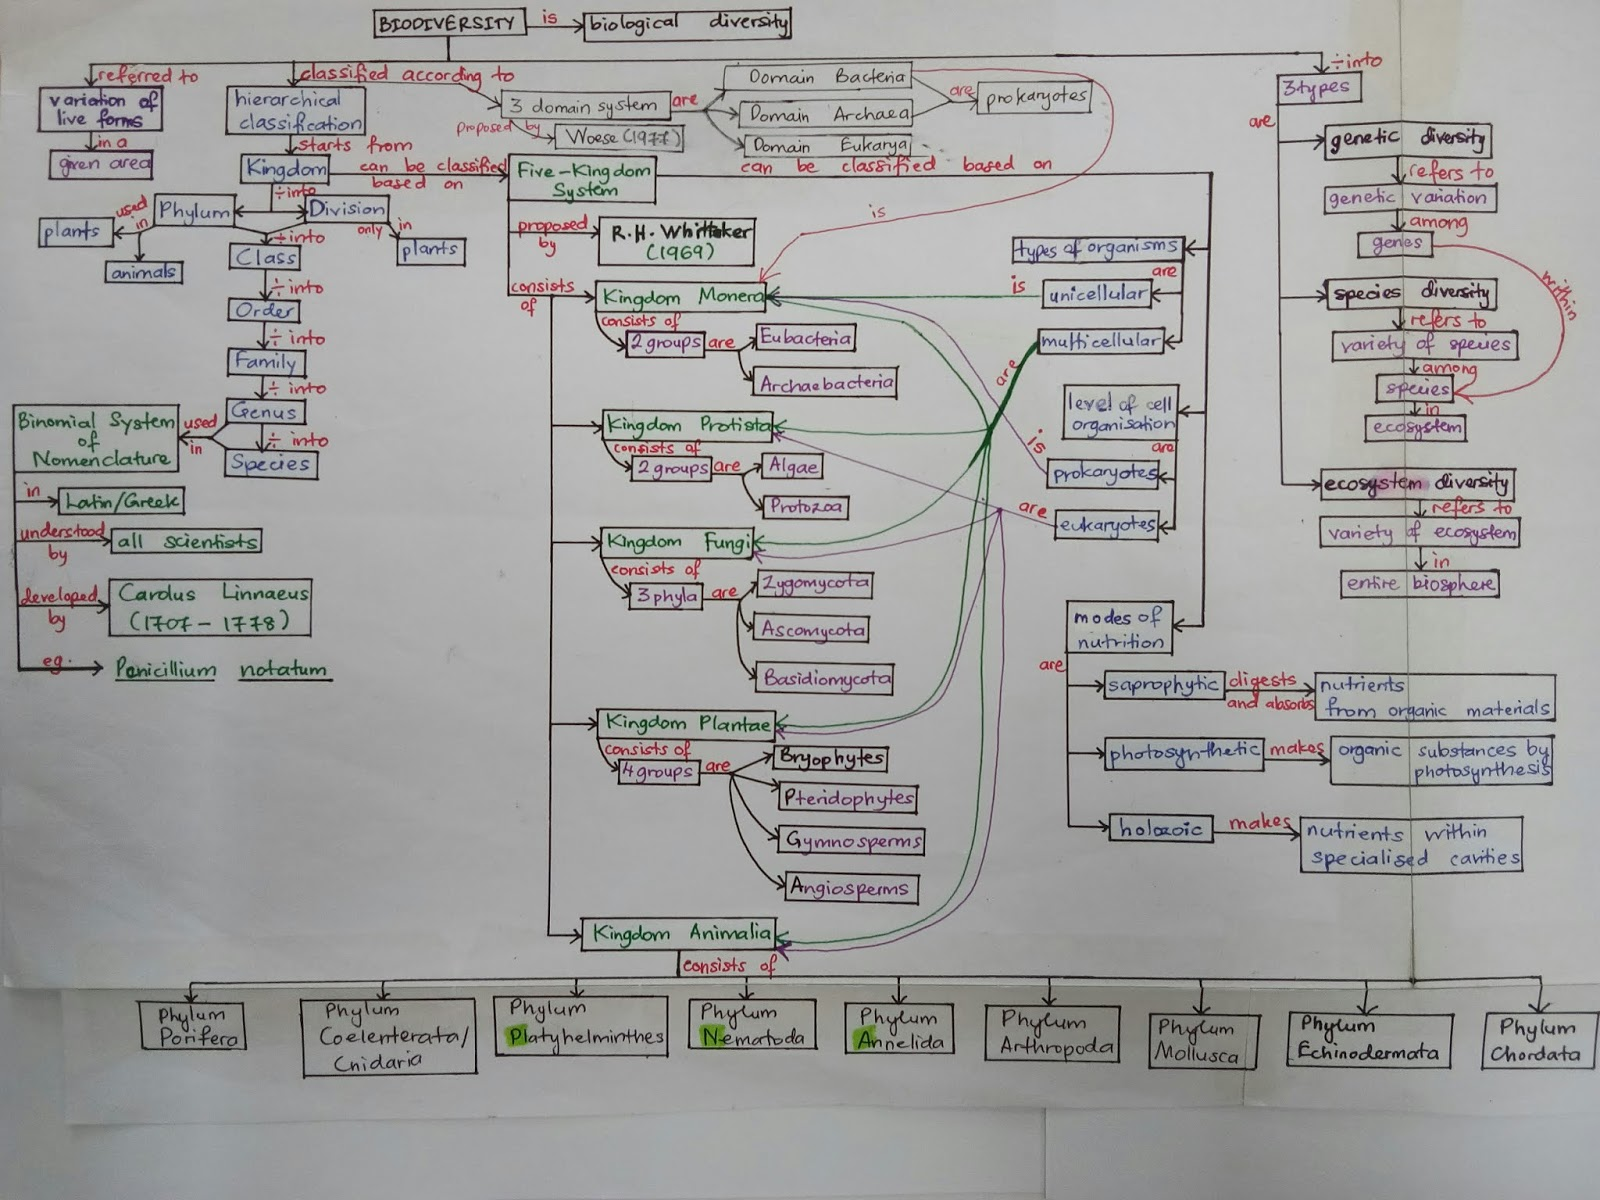 Image of: Class An Overview Of Biodiversity Ihmc Public Cmaps Biology Is To Serve Mankind Concept Map Biodiversity